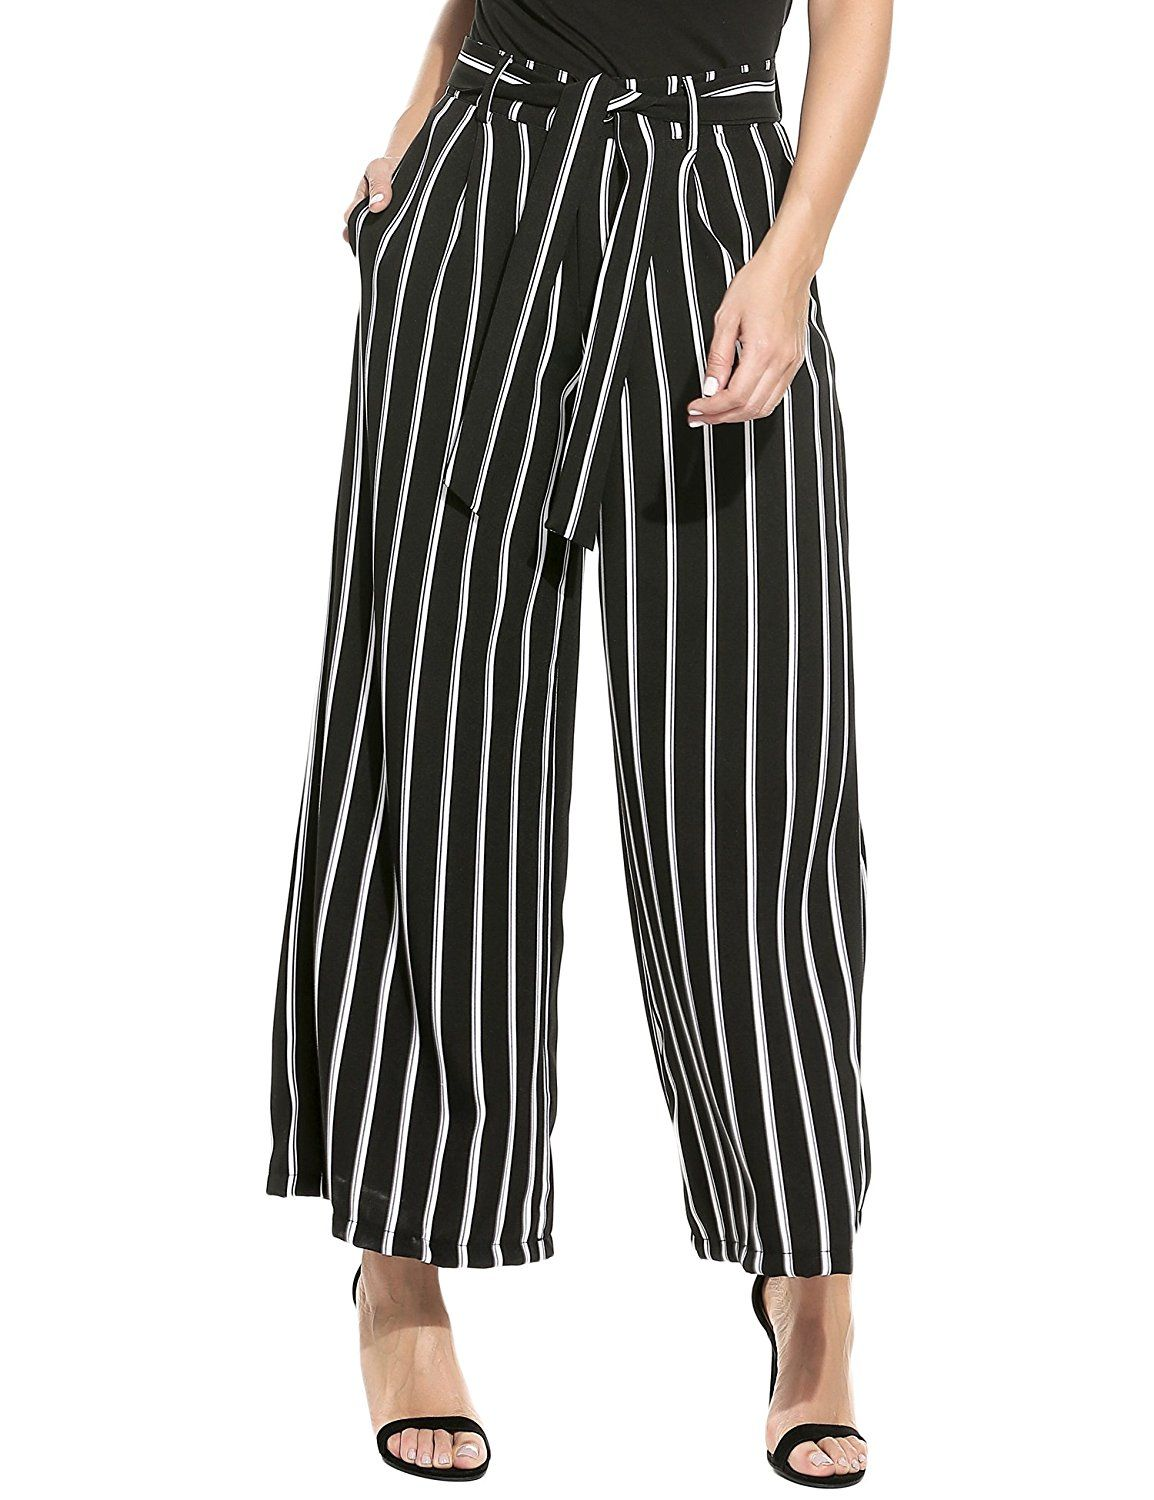 Zeagoo Women's Super Comfy Stripe Flowy Wide Leg High Waist Belted Palazzo  Pants Capris,Black